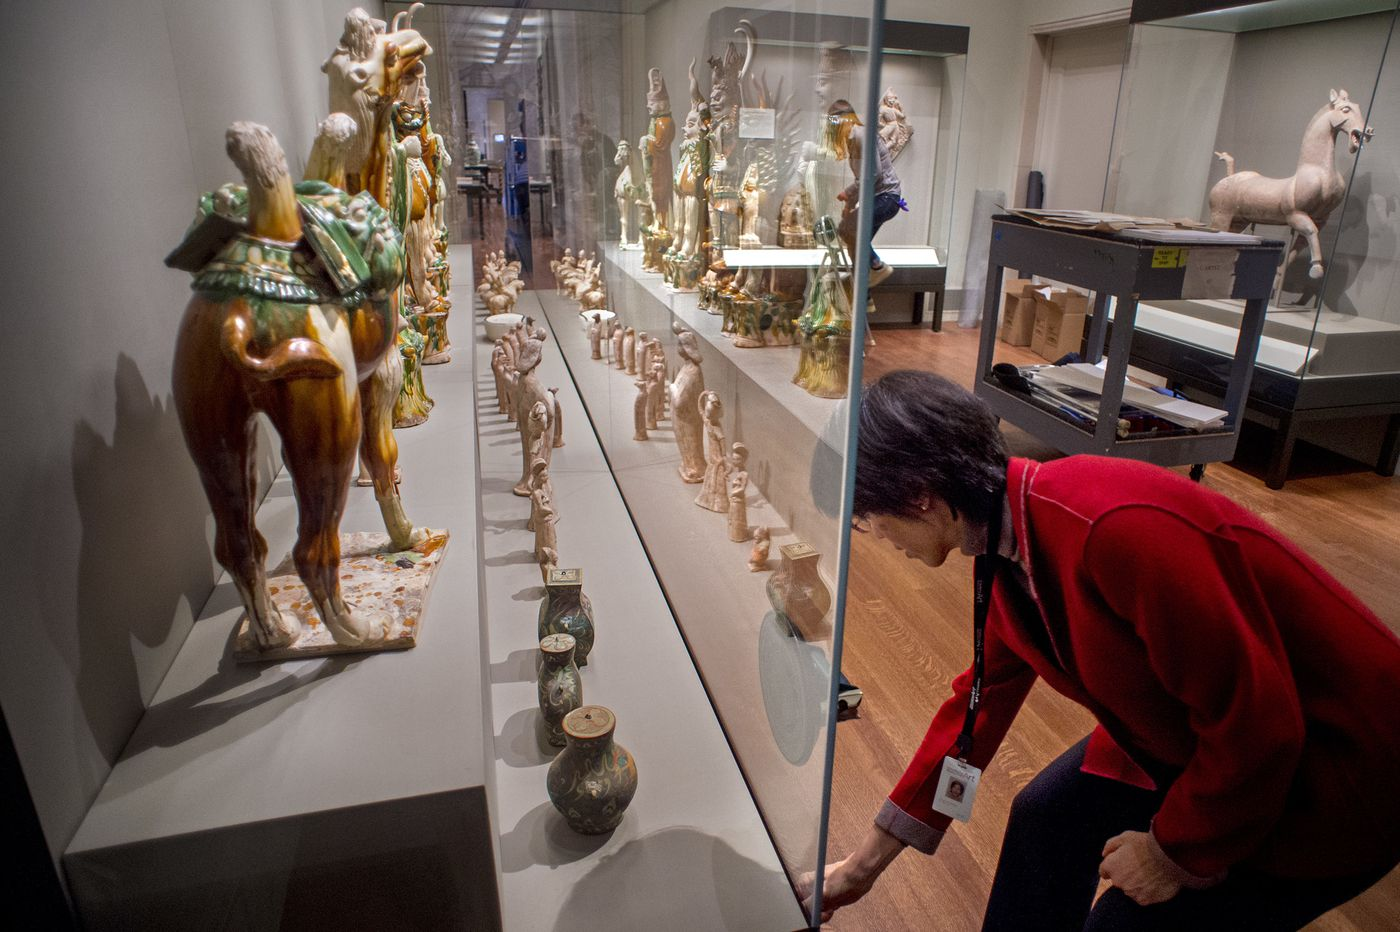 Chinese galleries at the Art Museum are reopening today after a $2 million renovation